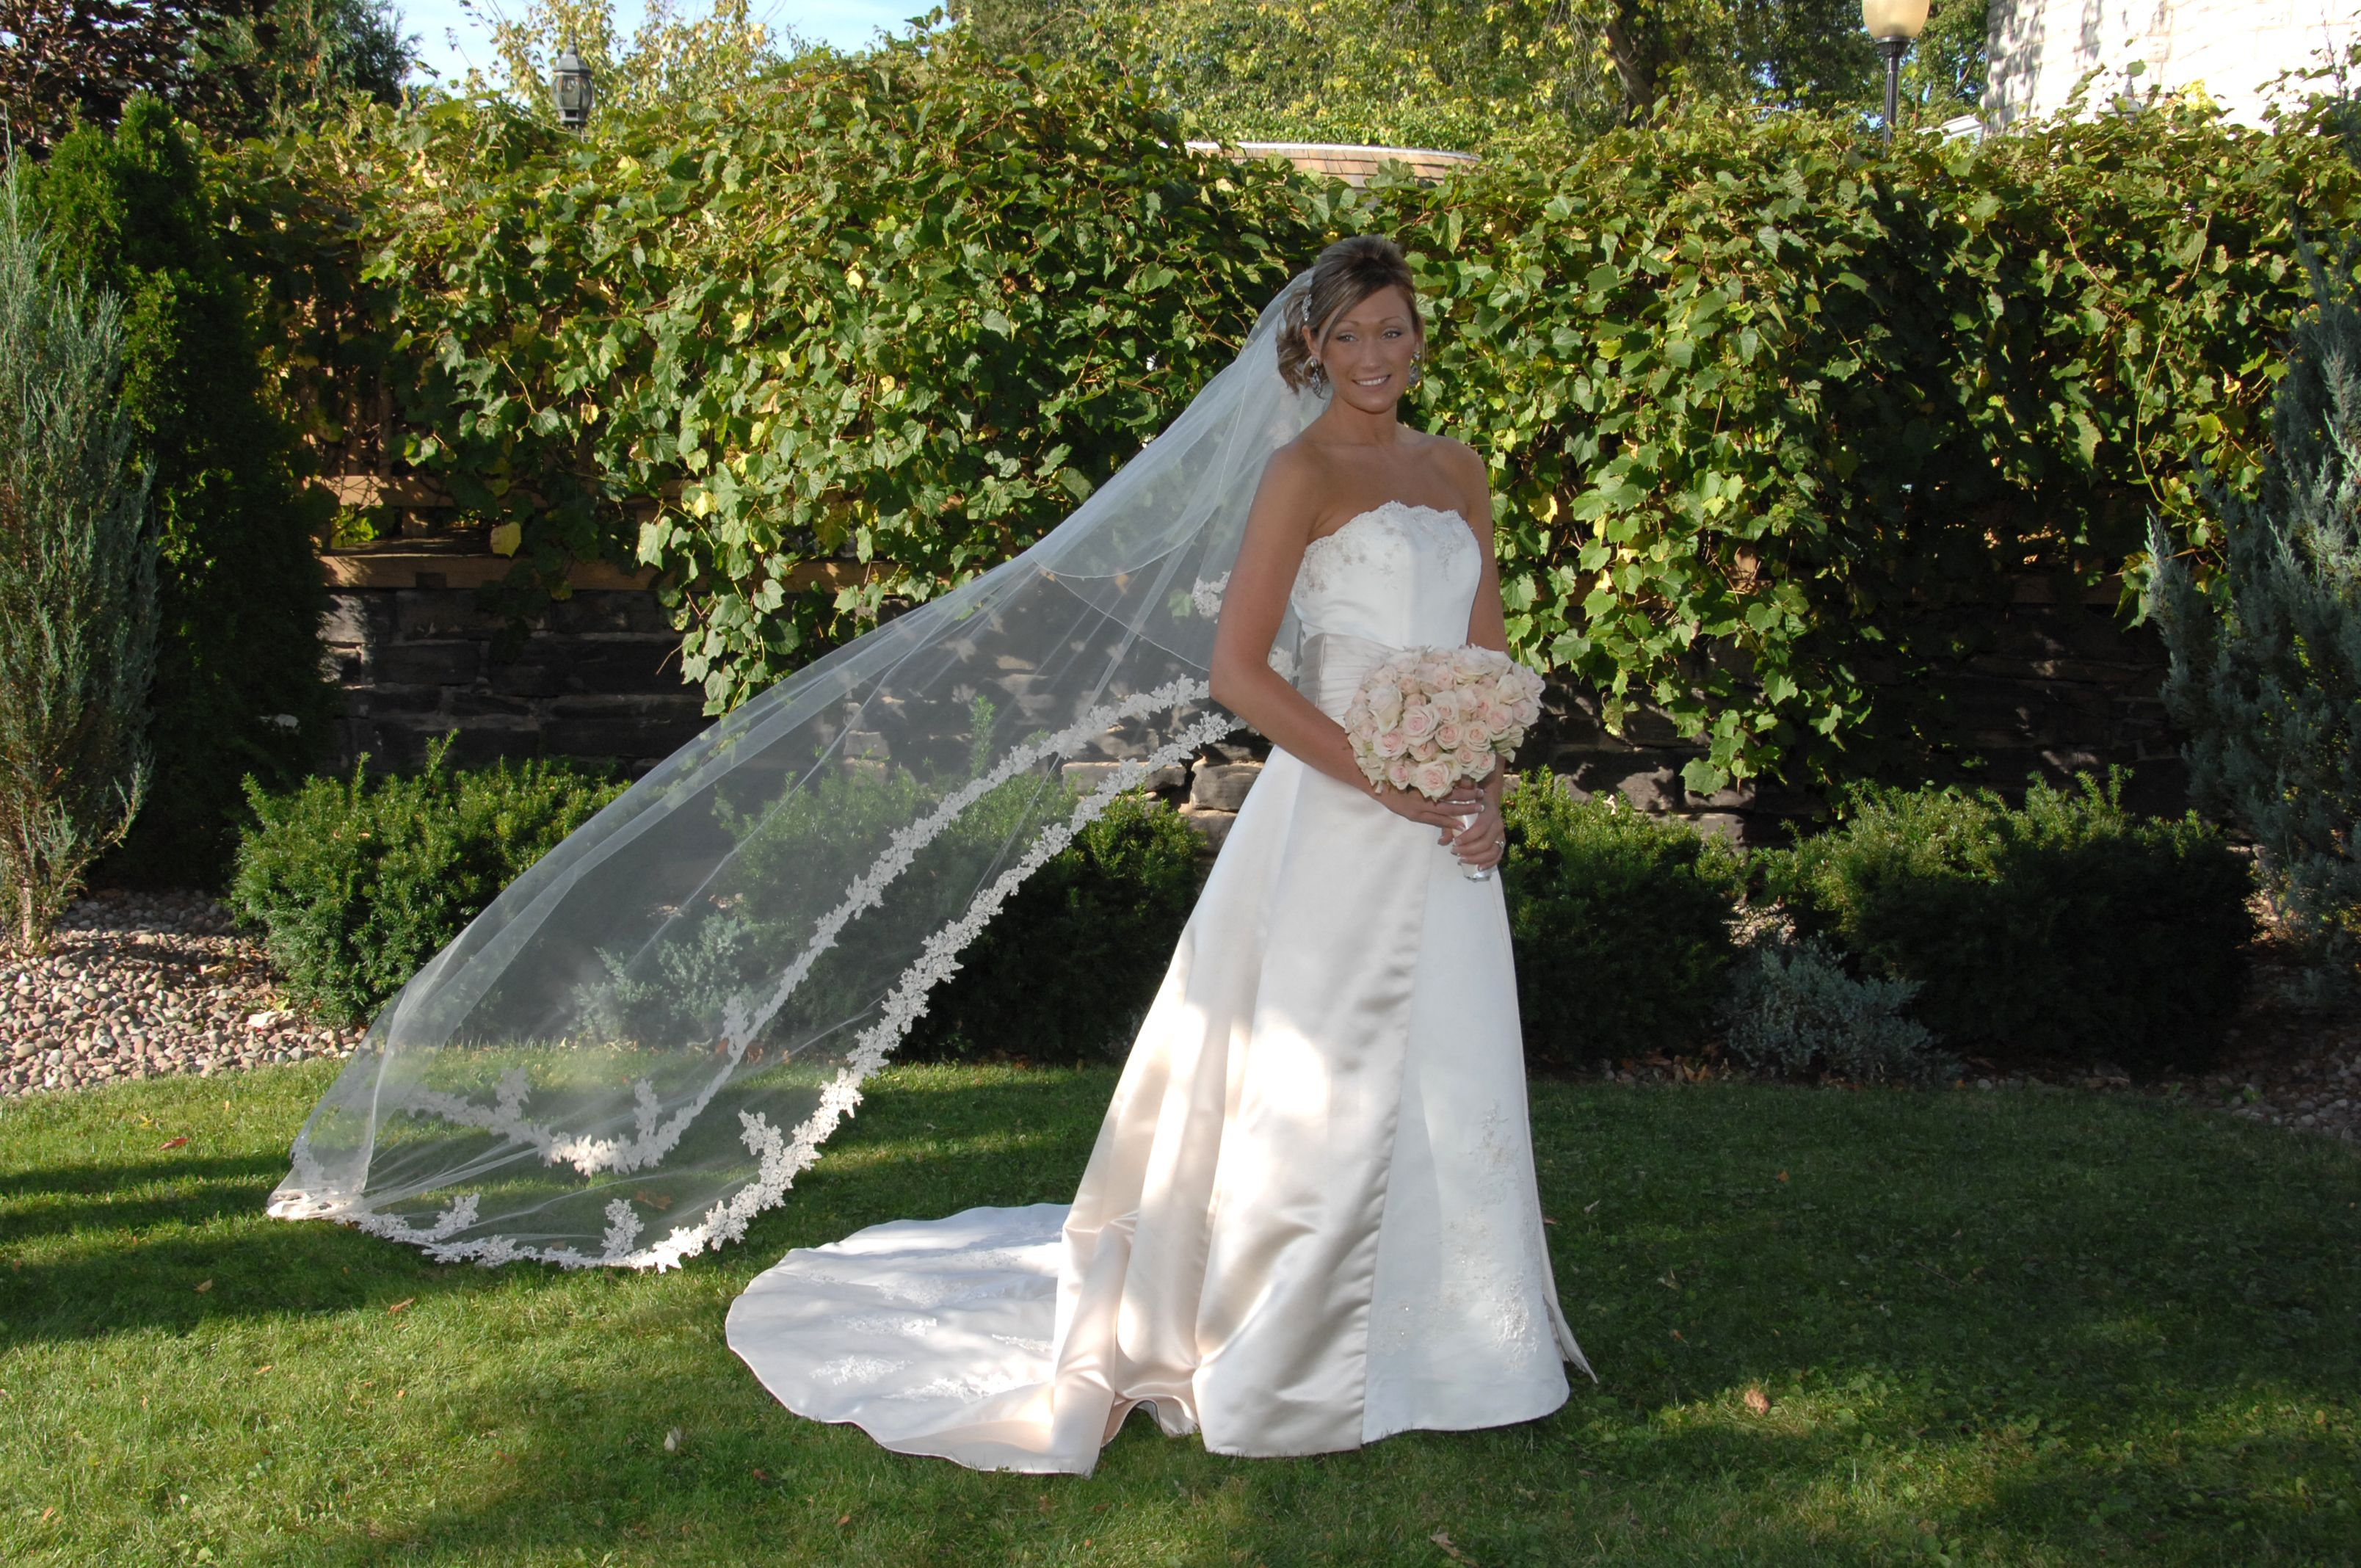 photograph of the bride with veil blowing